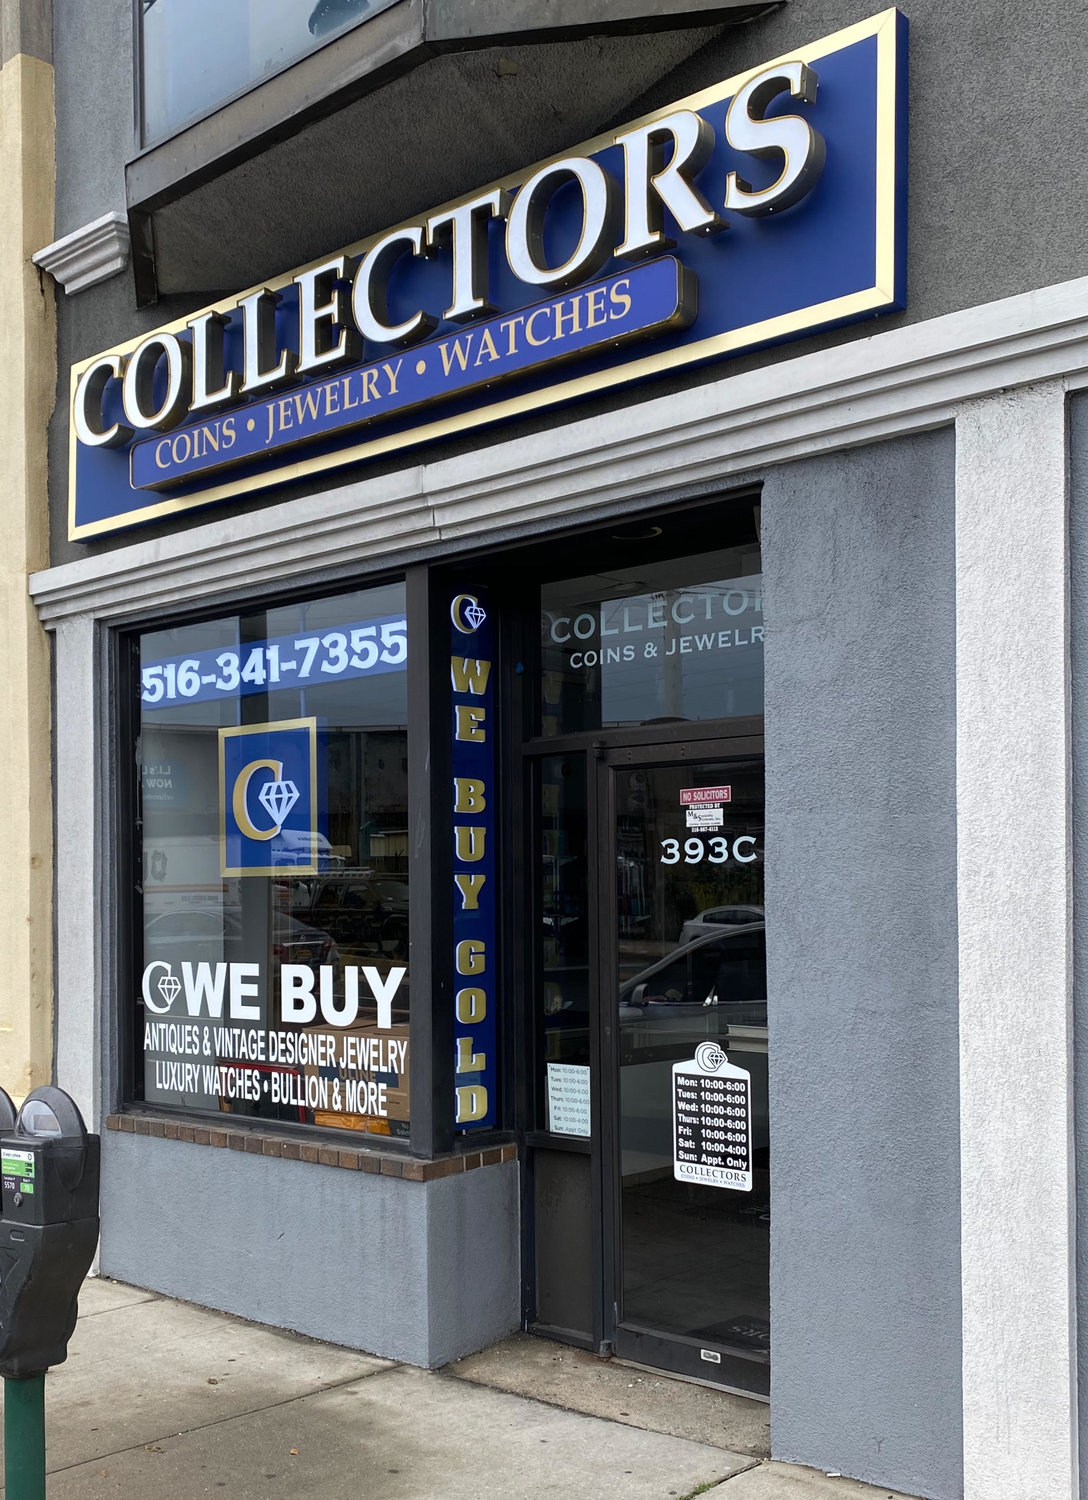 Collectors Coin and Jewelry in Lynbrook has been in business for more than 70 years.